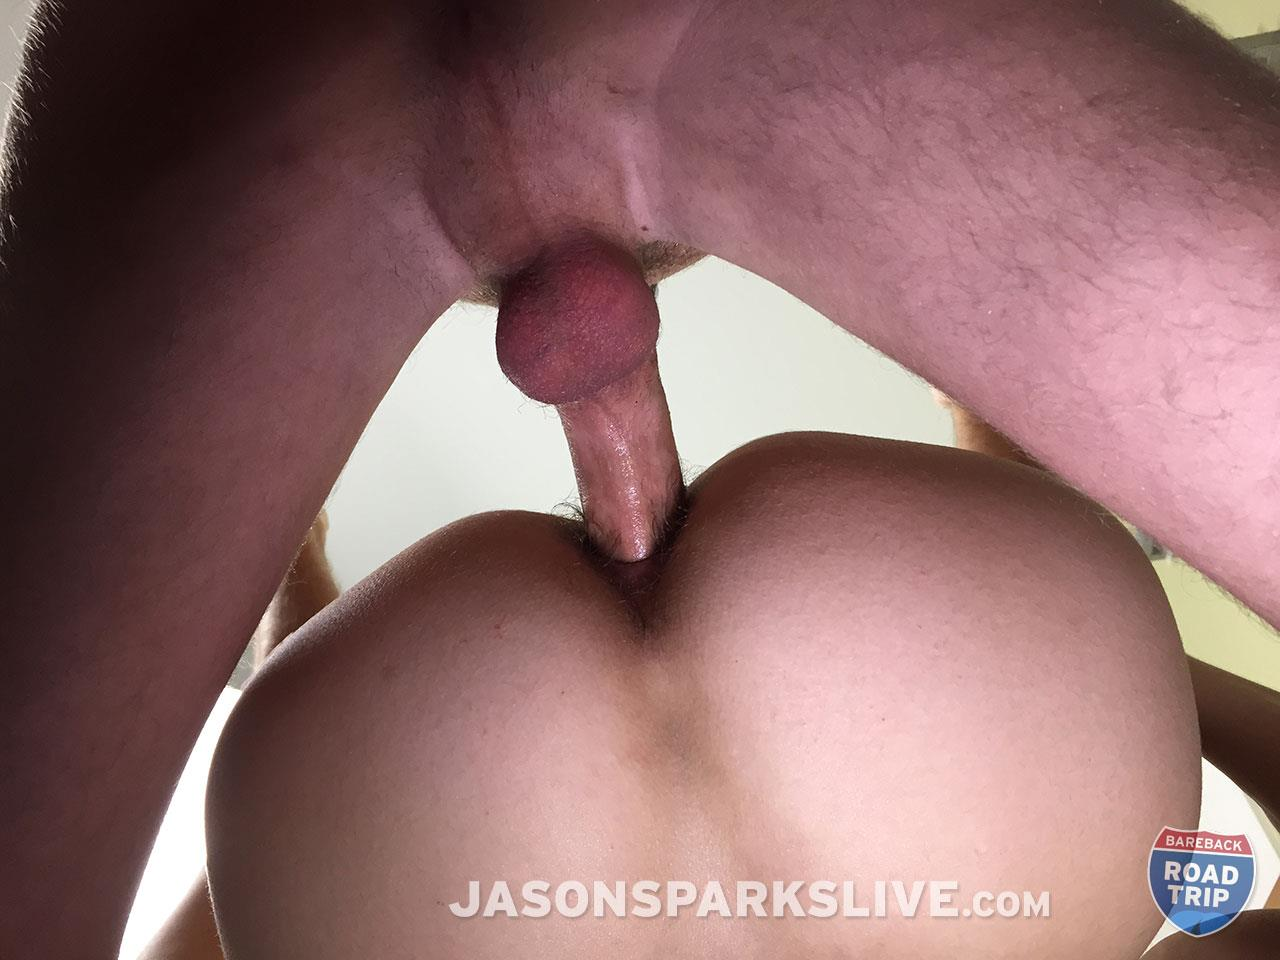 Jason-Sparks-Live-Travis-Stevens-and-Chad-Porter-Farmboy-Gets-Barebacked-By-A-Twink-Amateur-Gay-Porn-15 Travis Stevens Barebacking A Farm Boy From Topeka Kansas